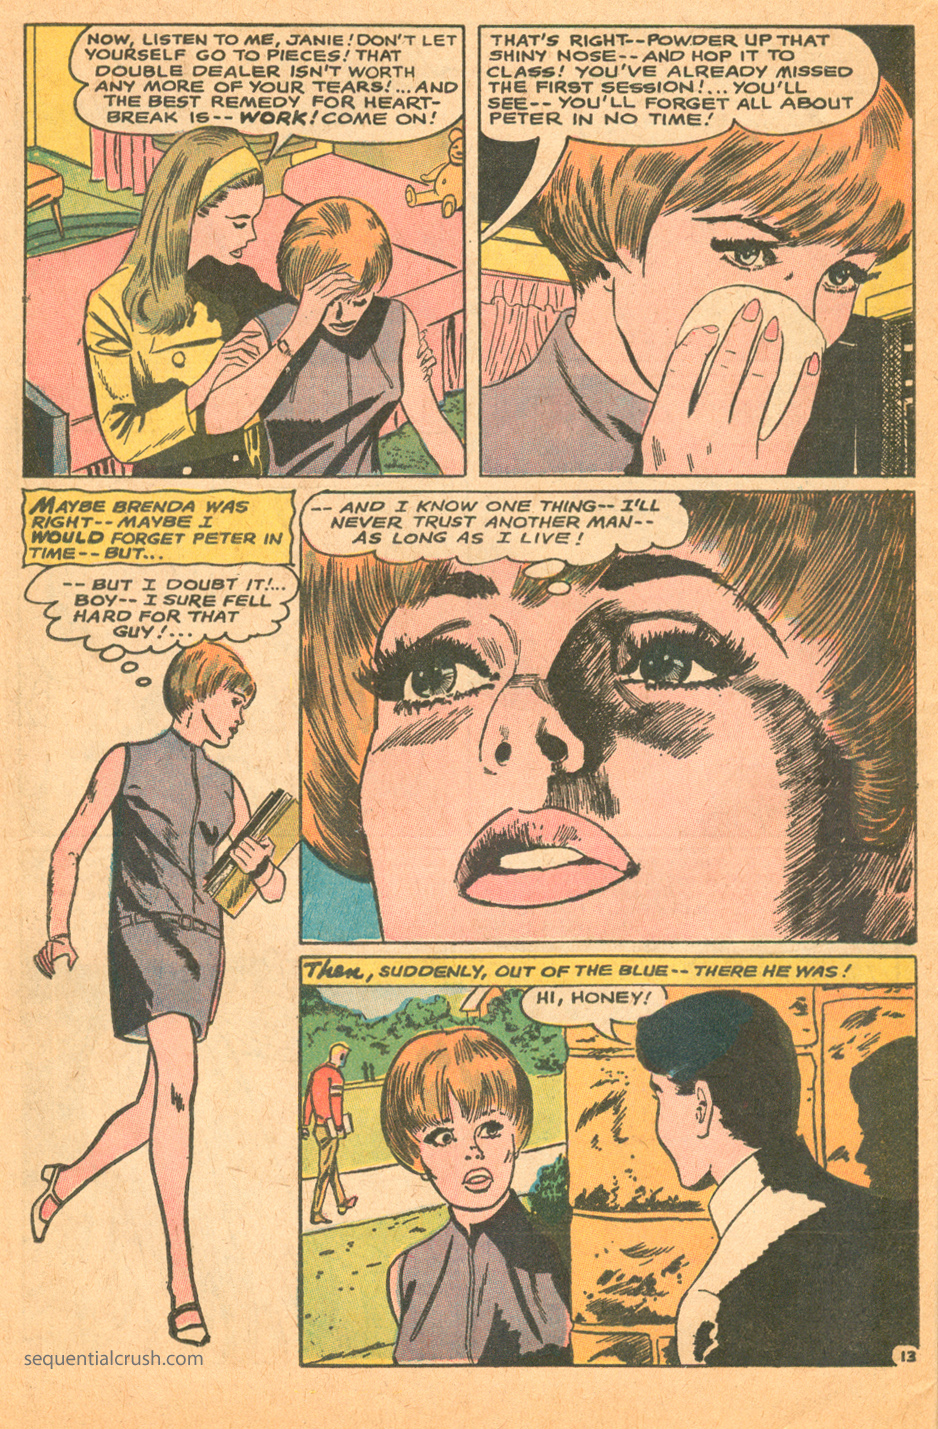 Jay Scott Pike illustration art romance comic book